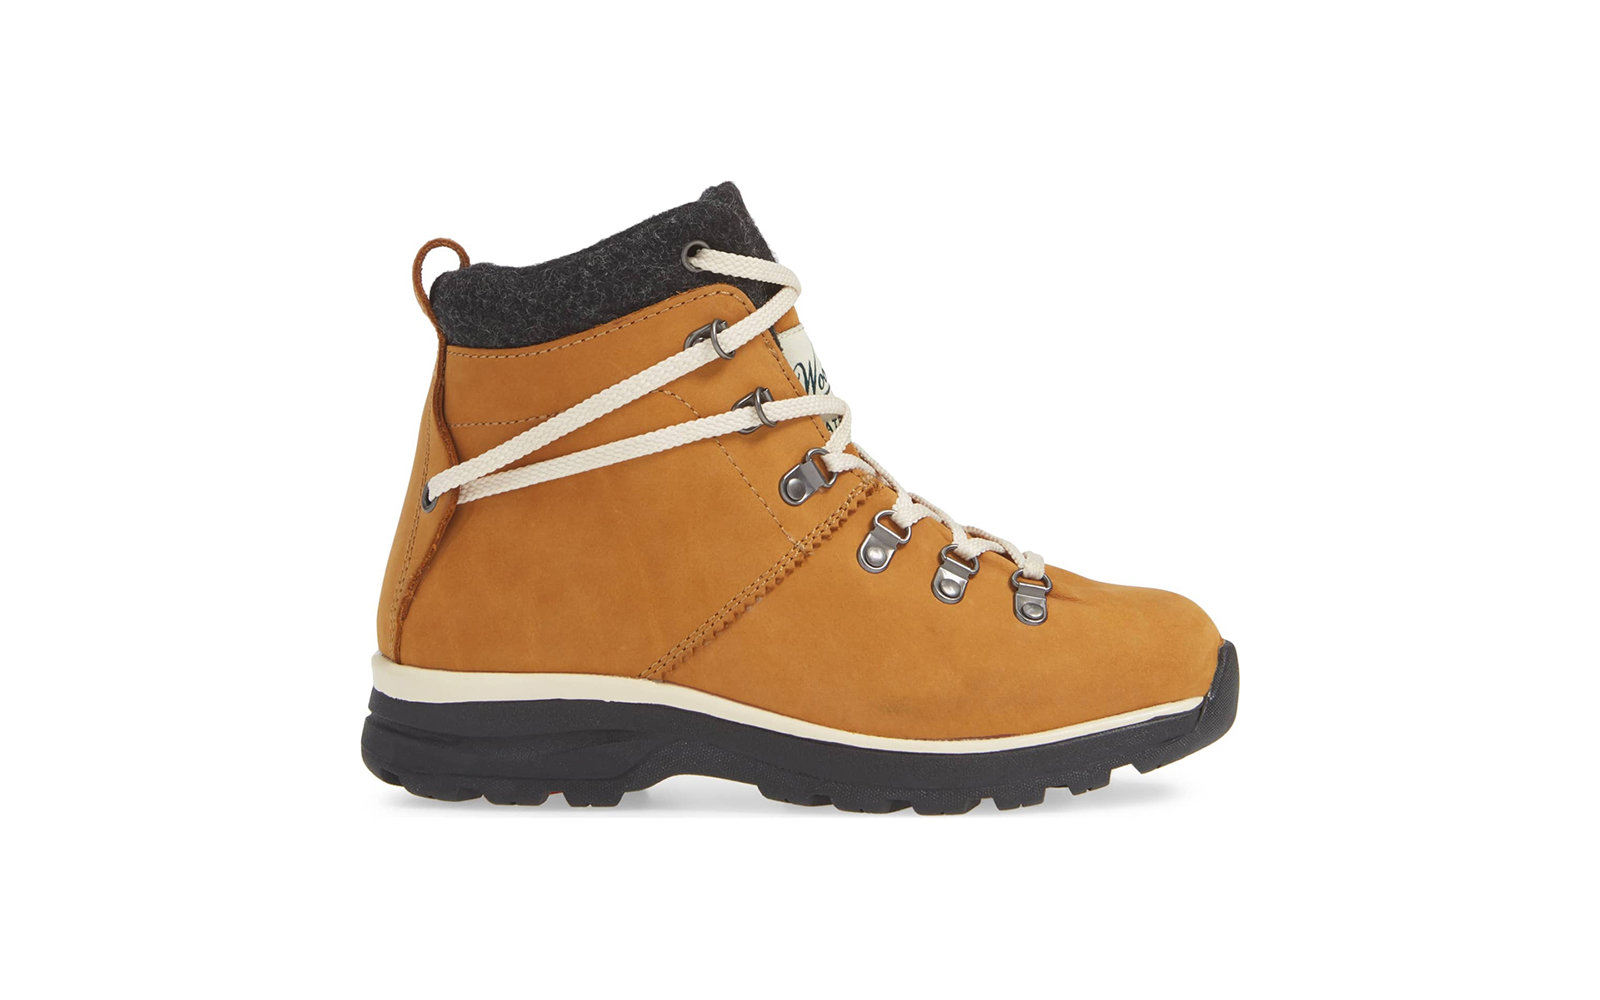 Best Hiking Boots: Woolrich Rockies II Waterproof Hiking Boot